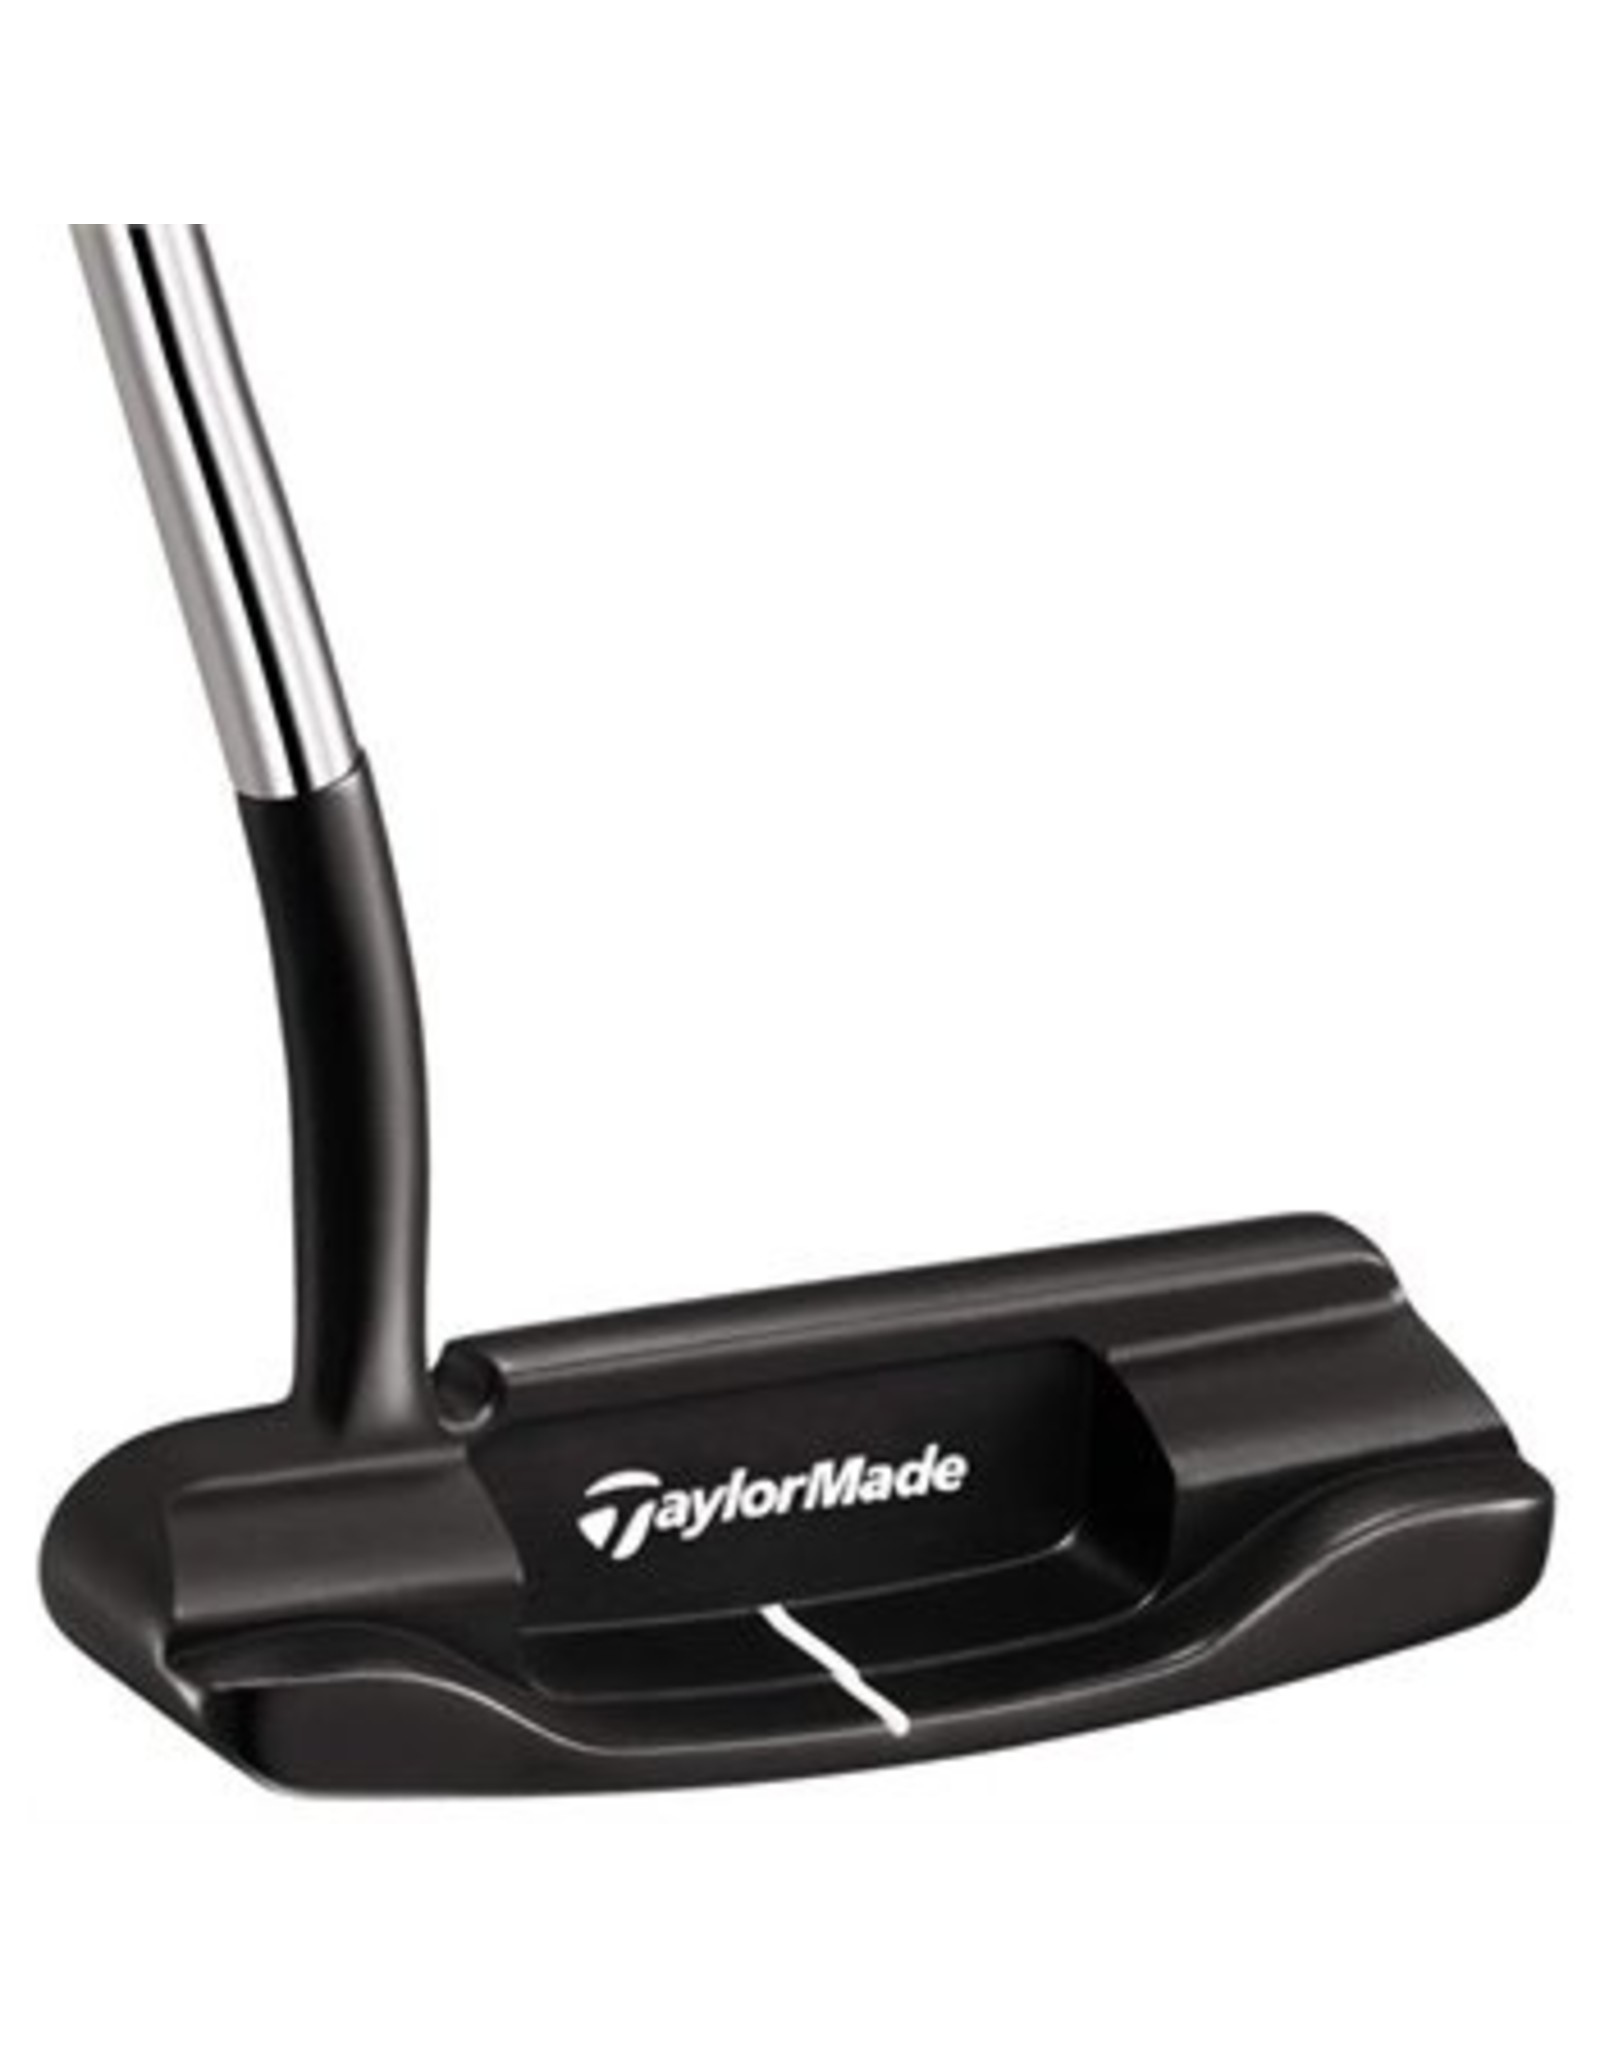 TaylorMade Used- Taylormade Classic 79 TM-180 Putter Rh